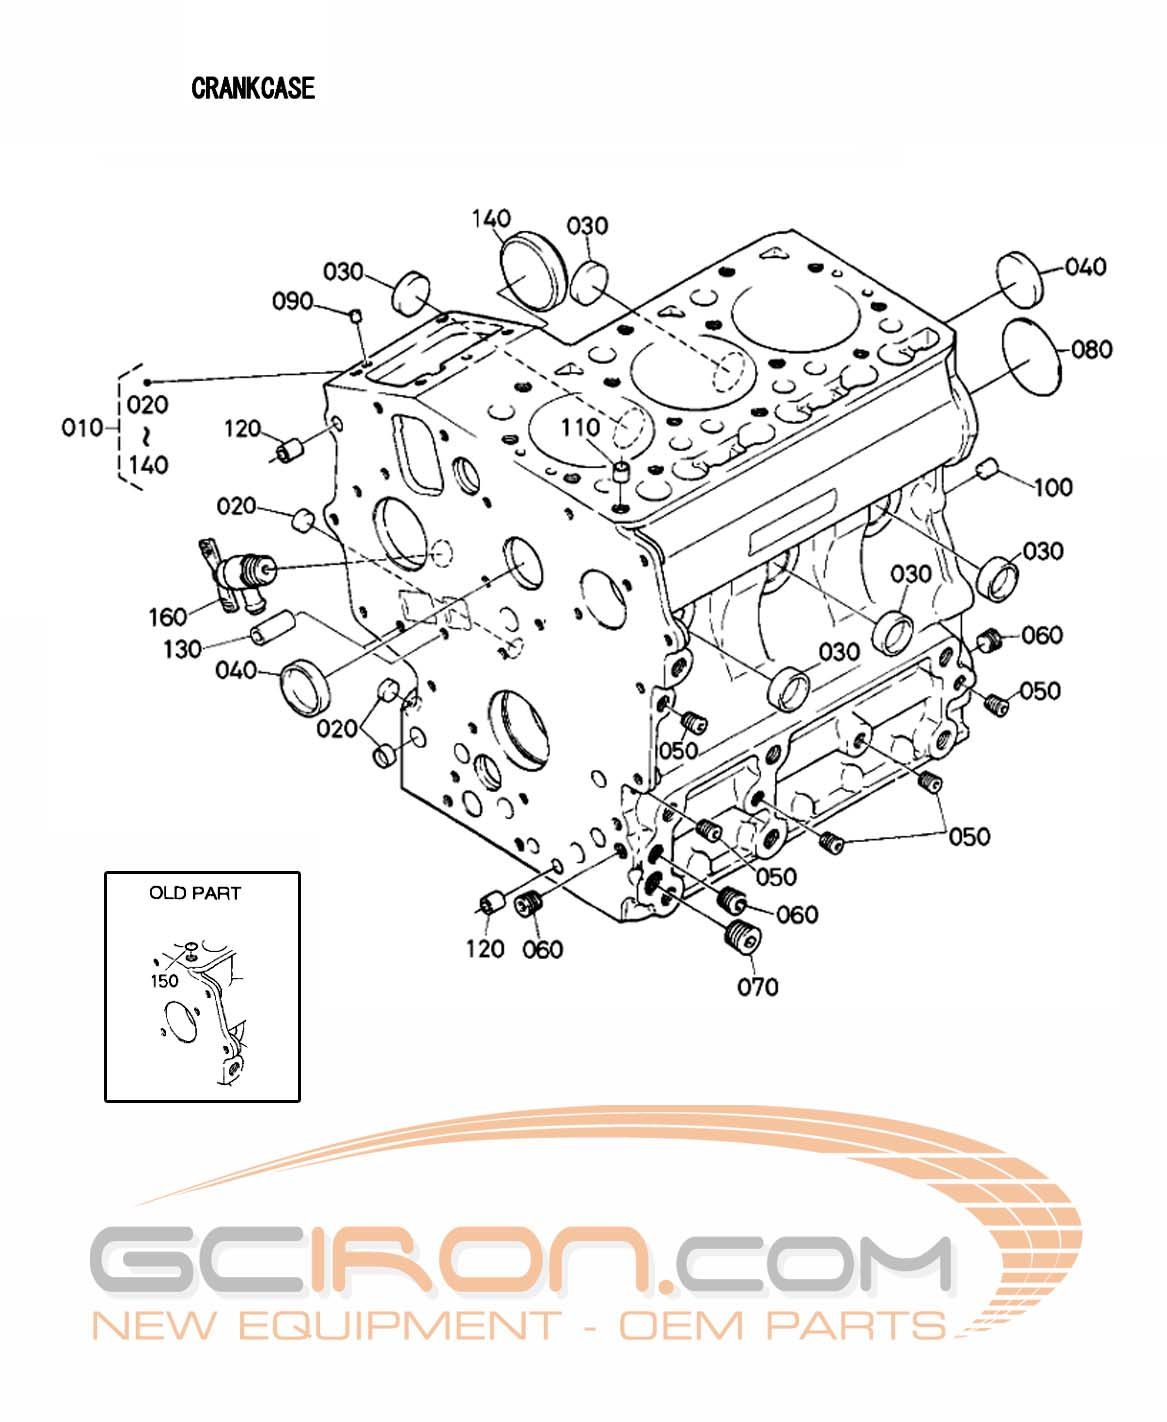 2910D722B101_1 kubota l2500 wiring diagram kubota wiring diagrams instruction kubota d722 wiring diagram at gsmx.co